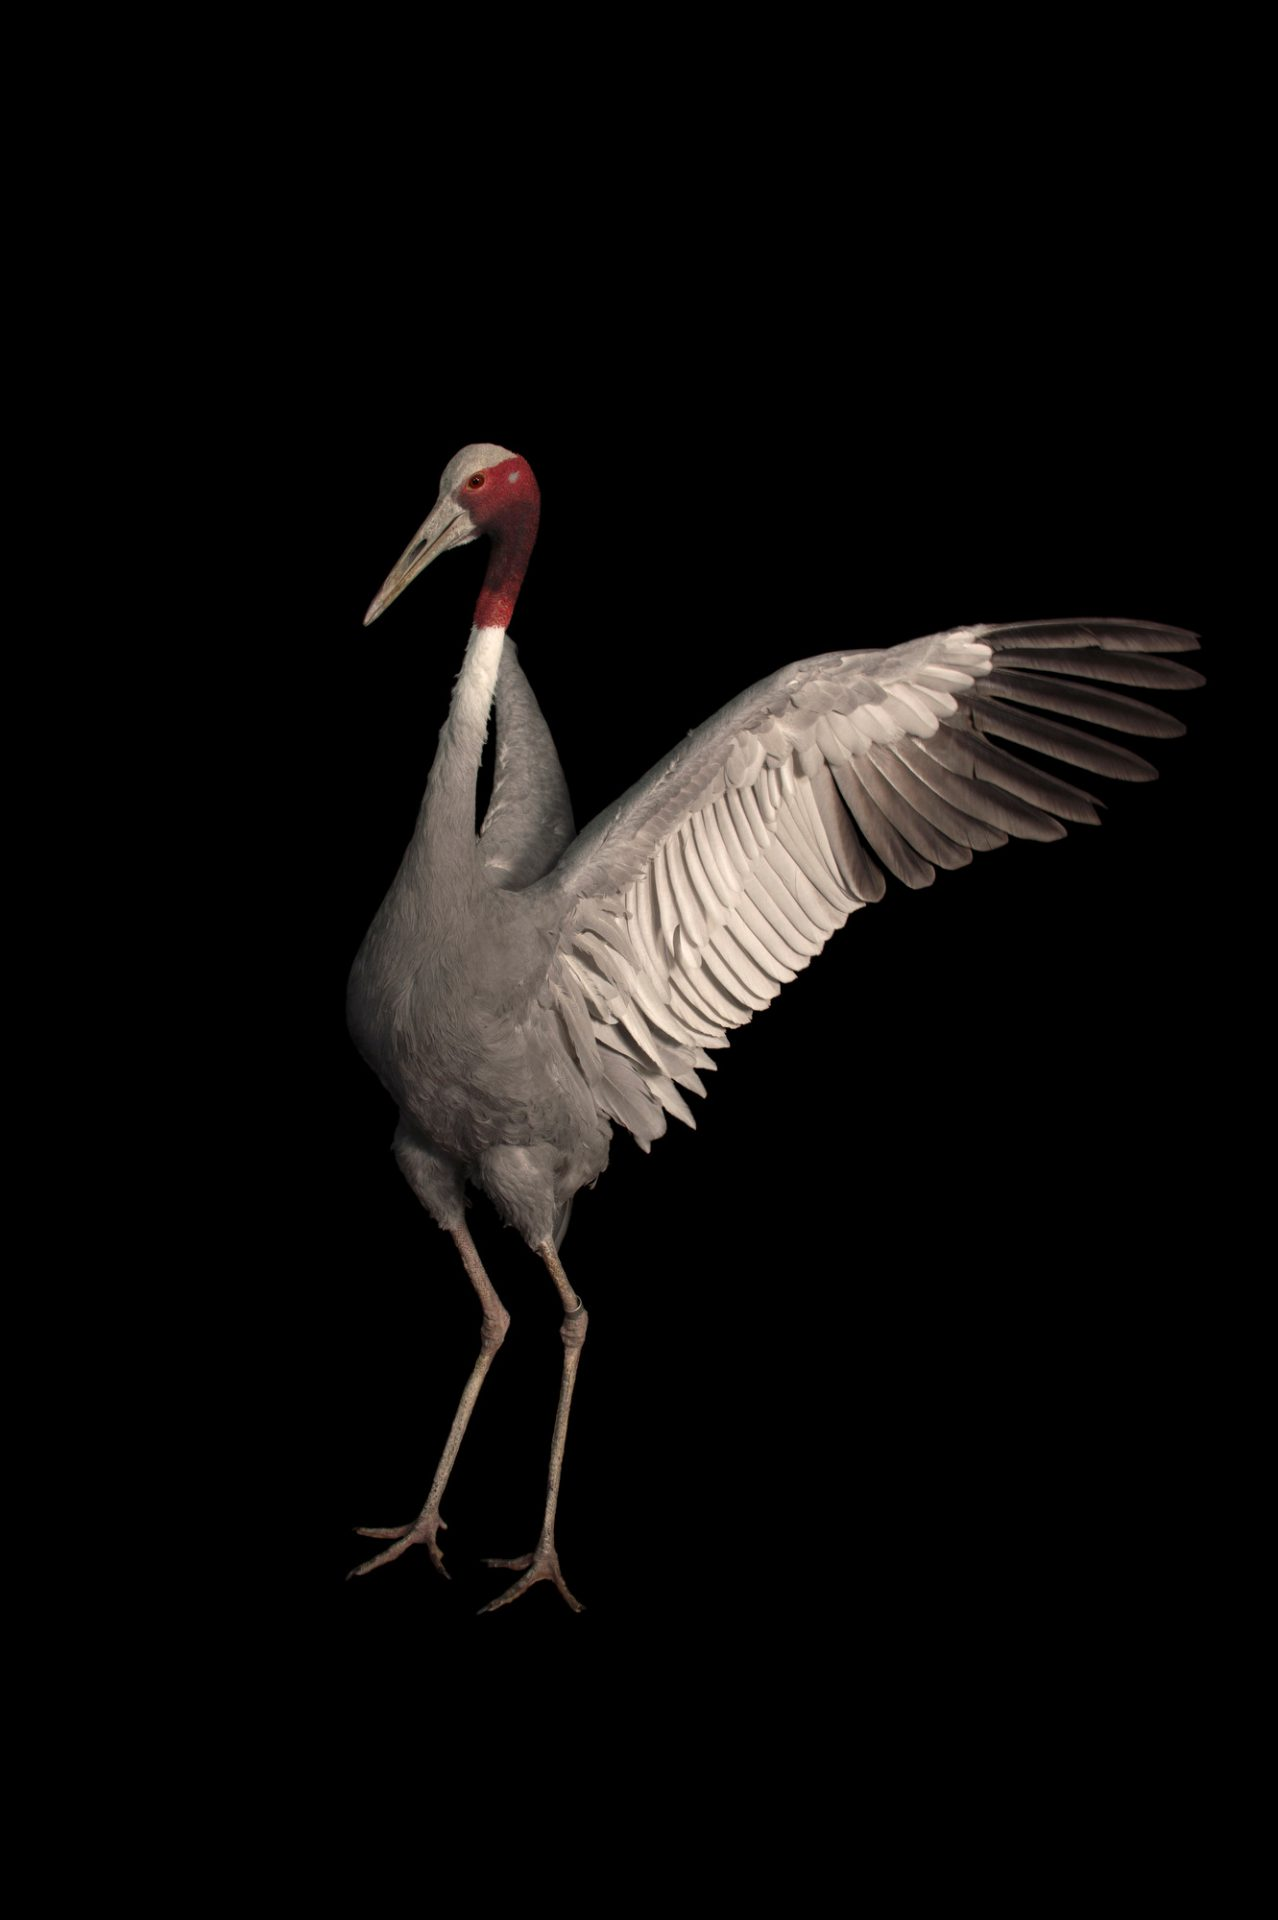 A vulnerable sarus crane (Grus antigone) at the Cheyenne Mountain Zoo in Colorado Springs, CO.